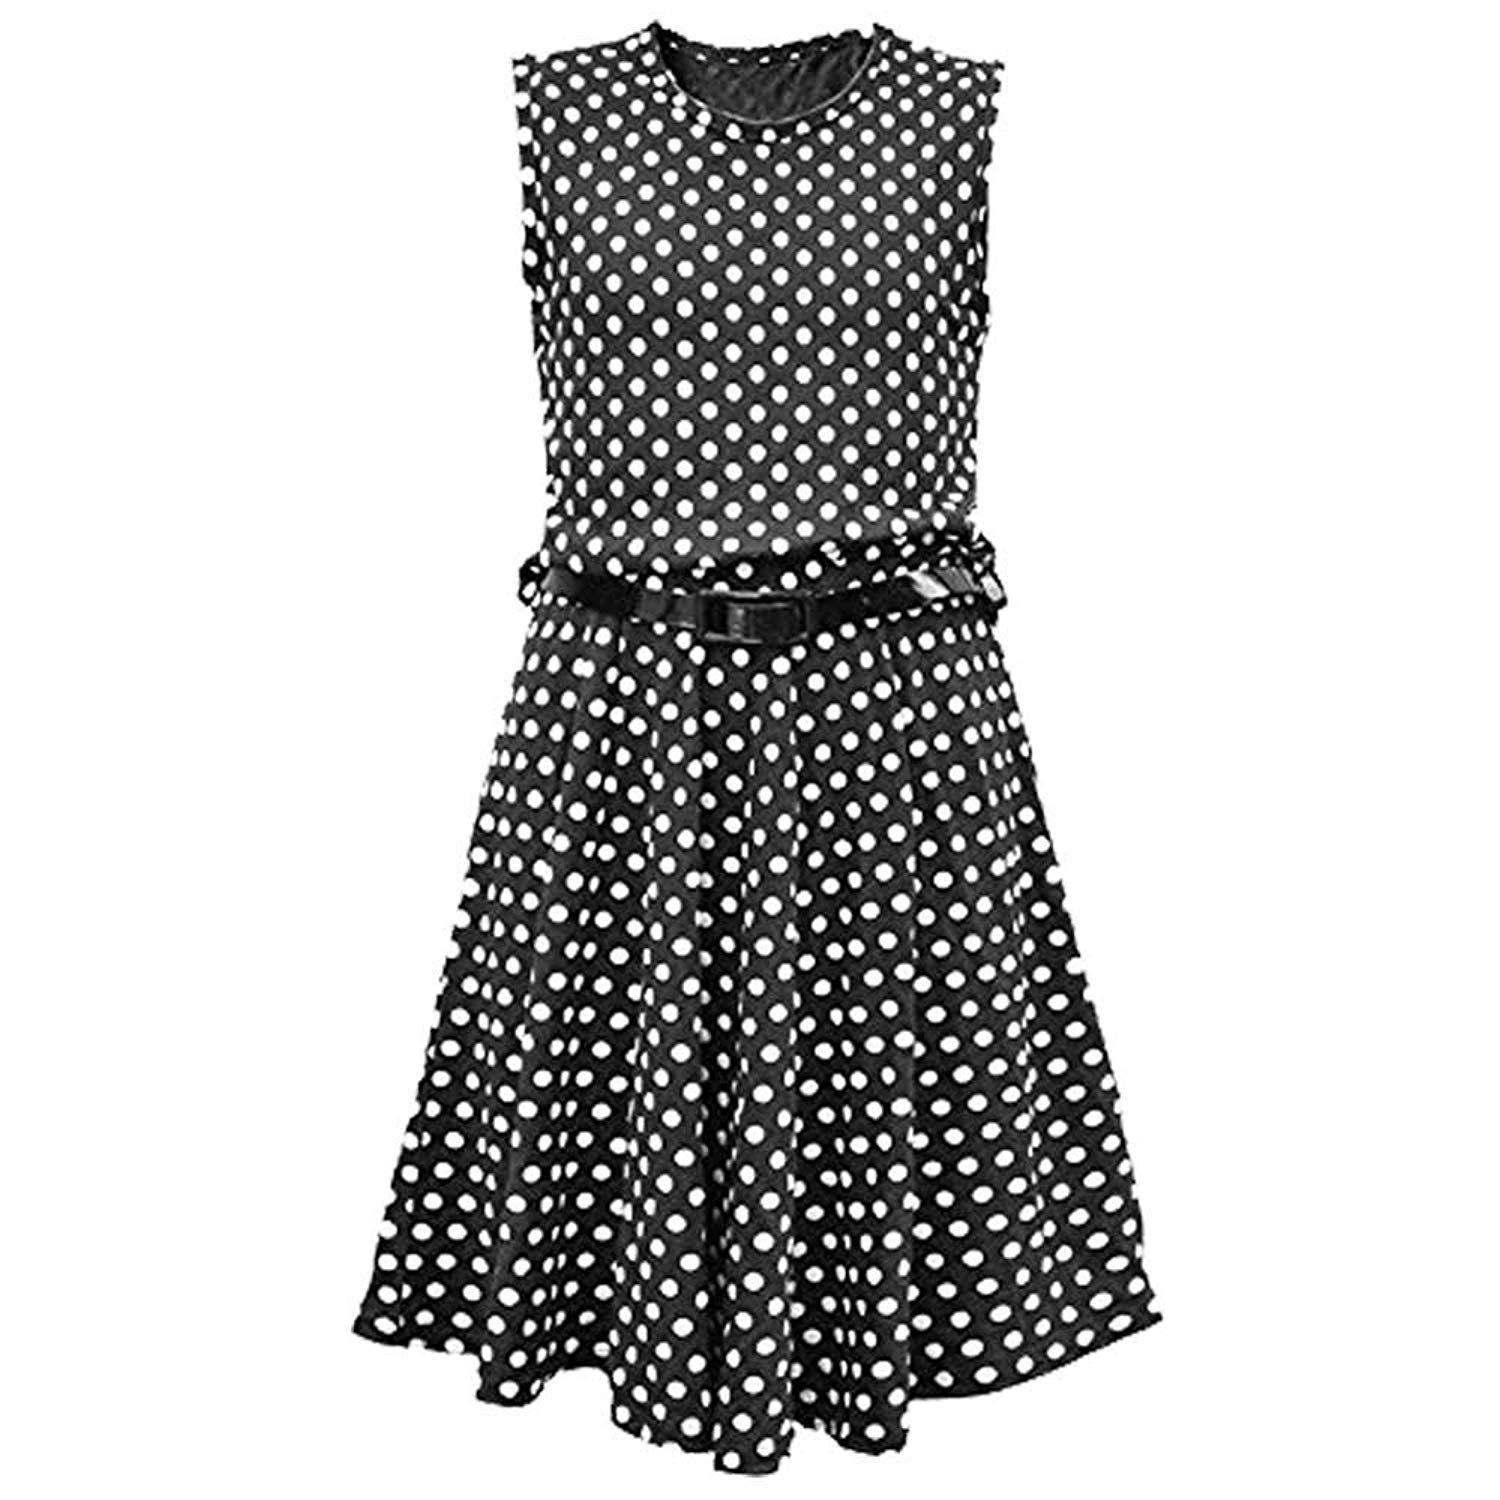 e3865c90964f Get Quotations · New Girls Kids Polka Dot Spot Skater Dresses With Free Patent  Belt Age 7-13